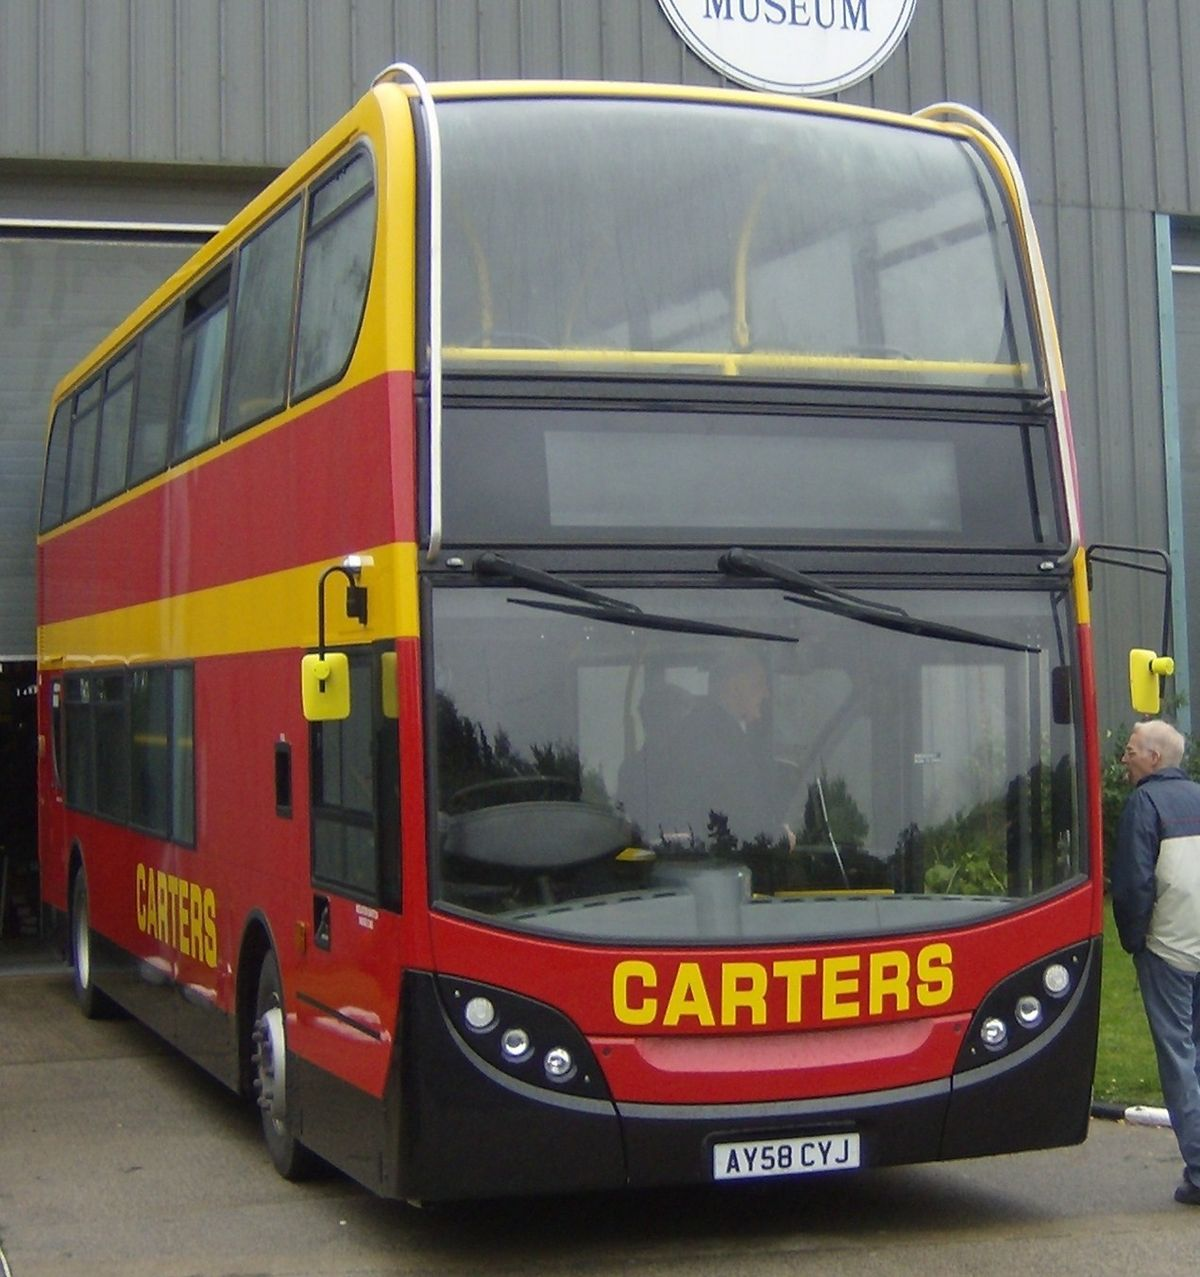 Carters Coach Services Wikipedia